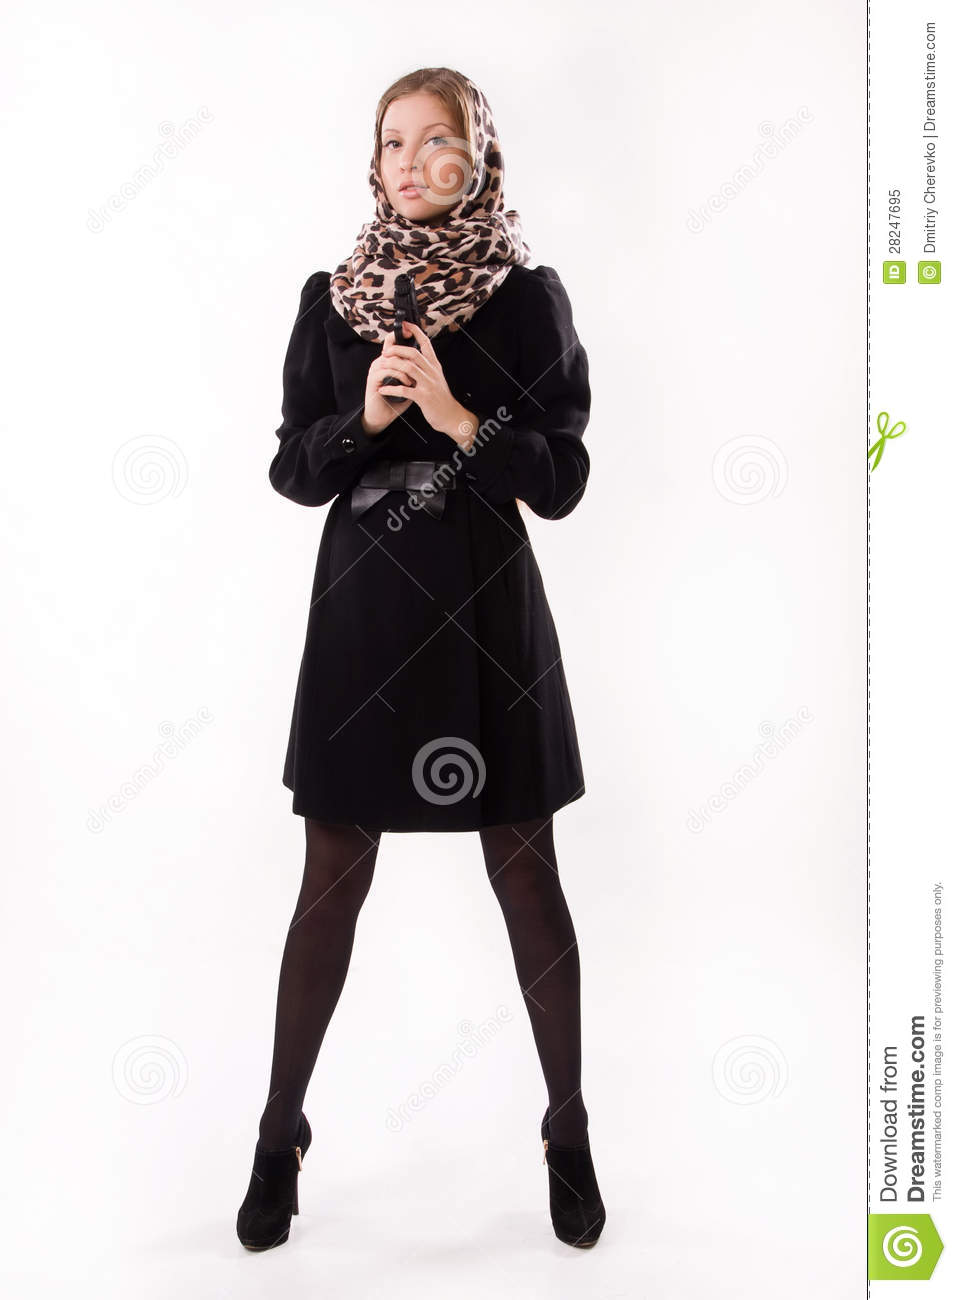 Spy Girl In A Black With Gun Royalty Free Stock Photo   Image